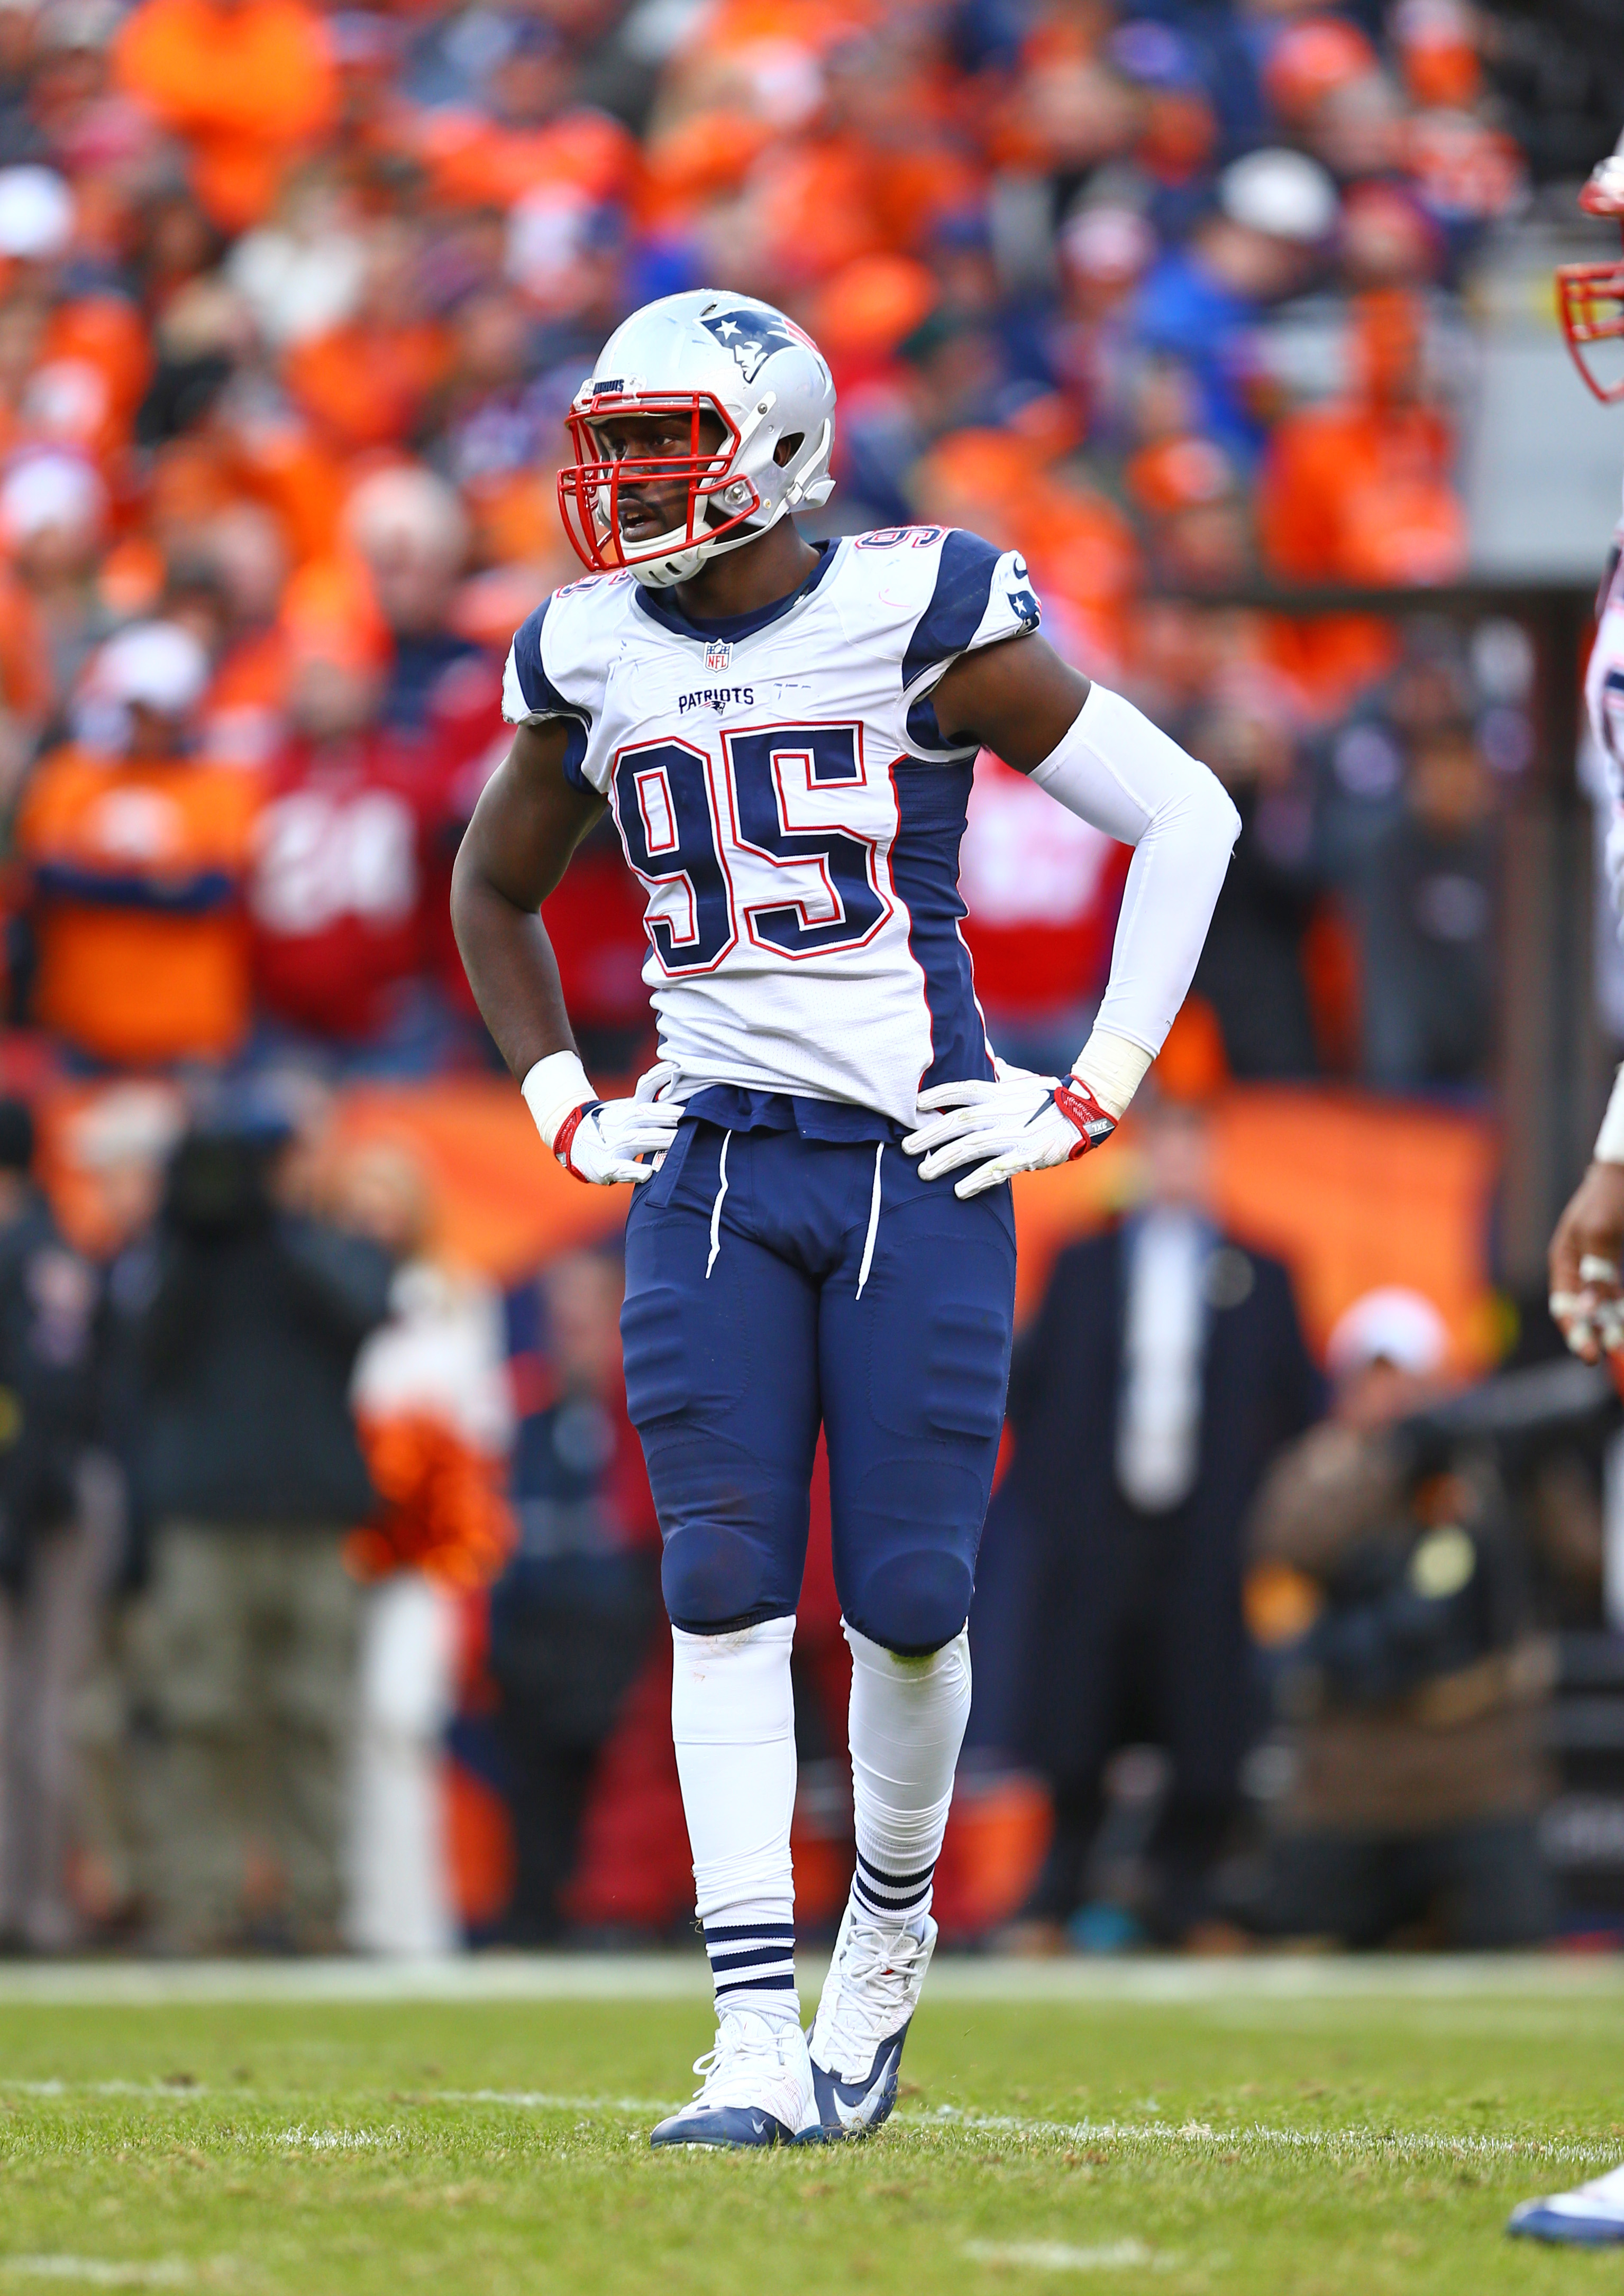 Winners and losers of the Chandler Jones trade and a busy 2 days of NFL free agency